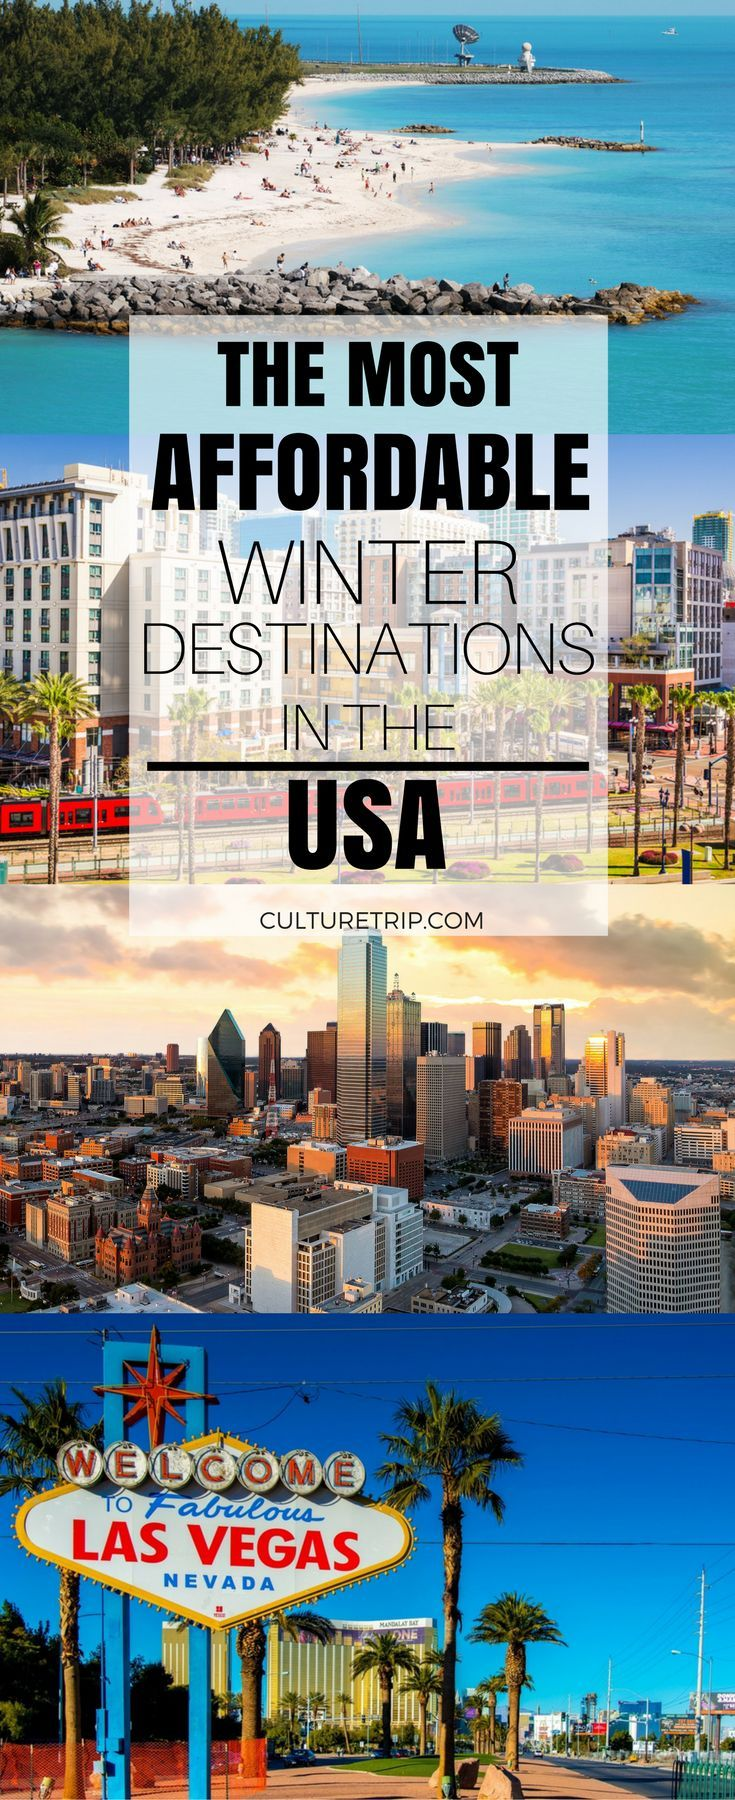 And the Most Affordable Winter Vacation Destinations in the United States Is…